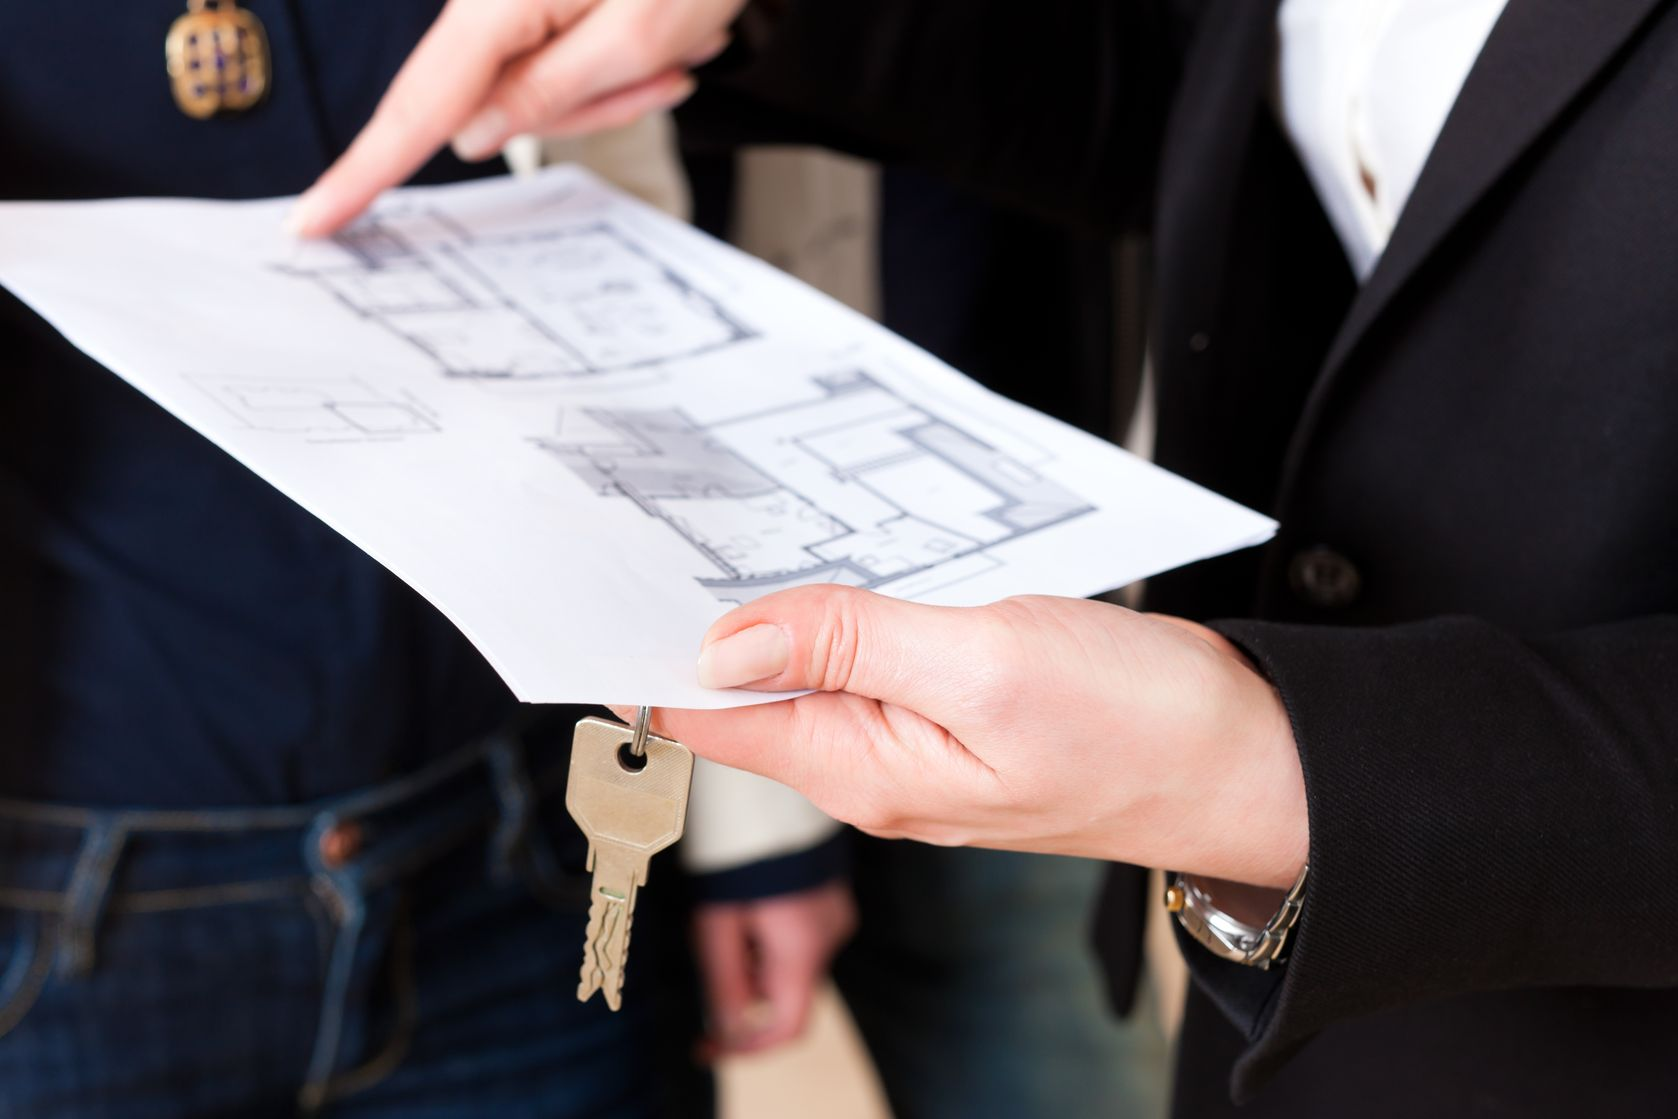 Settlement Agent Perth – Property Conveyancing Perth Western